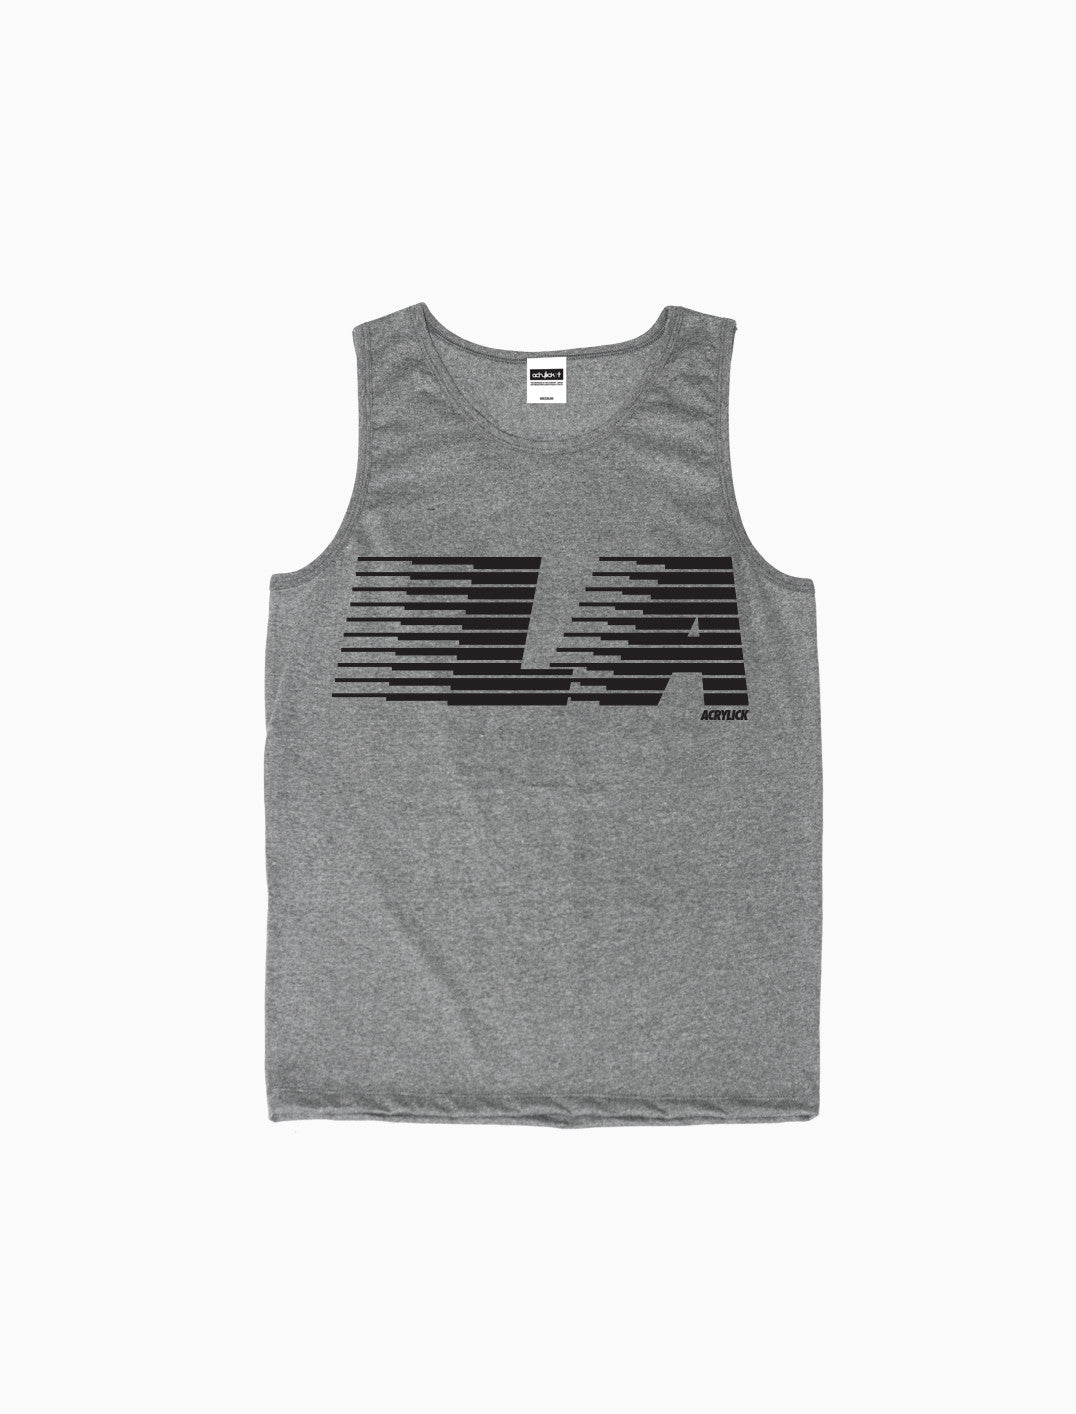 Acrylick - LA Strike - Tank Top